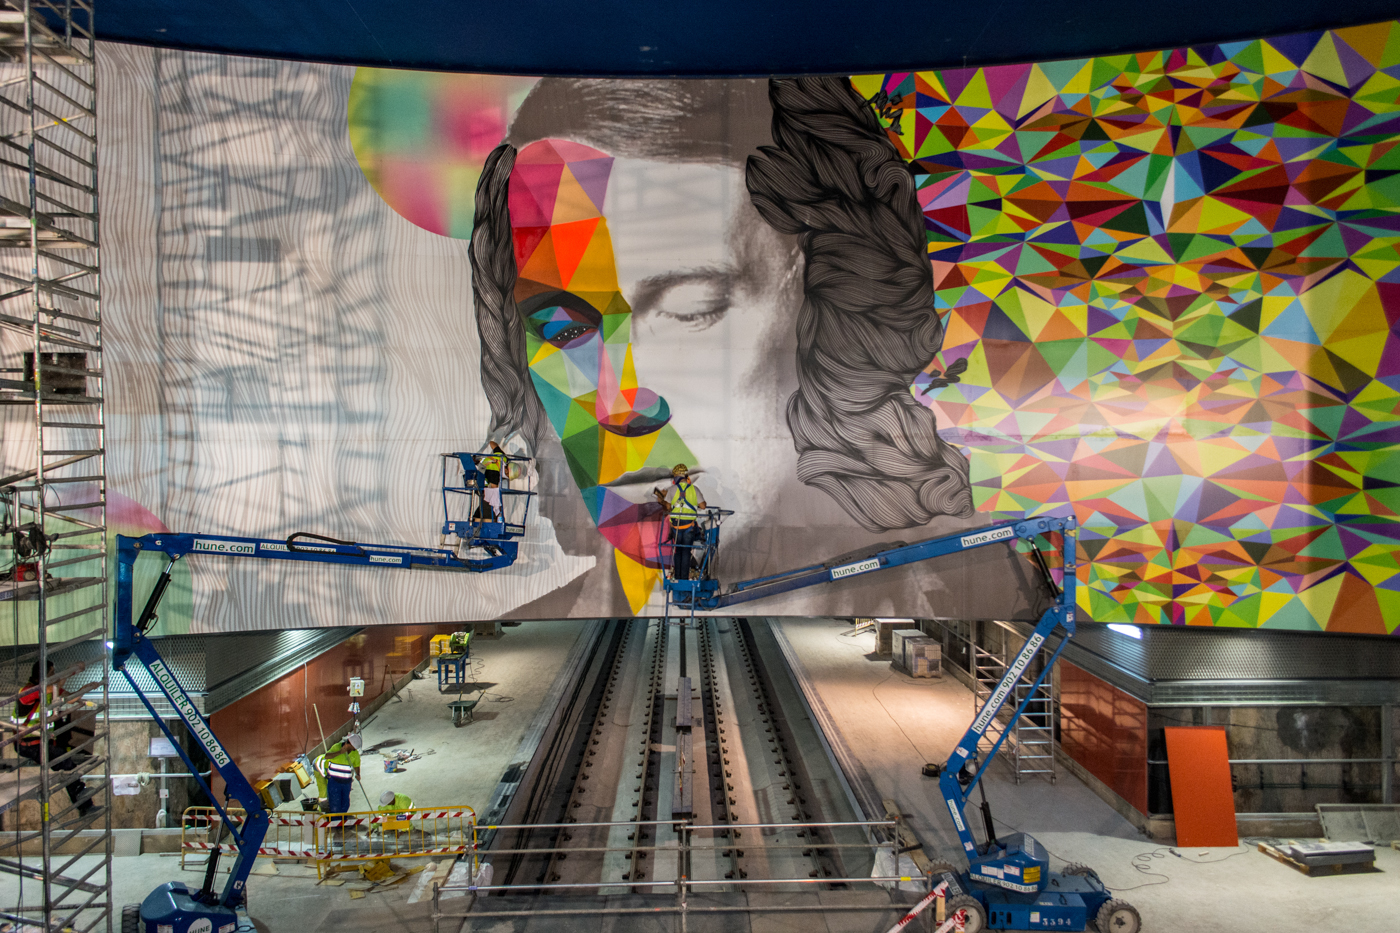 okuda-rosh333-at-the-metro-station-in-madrid-06